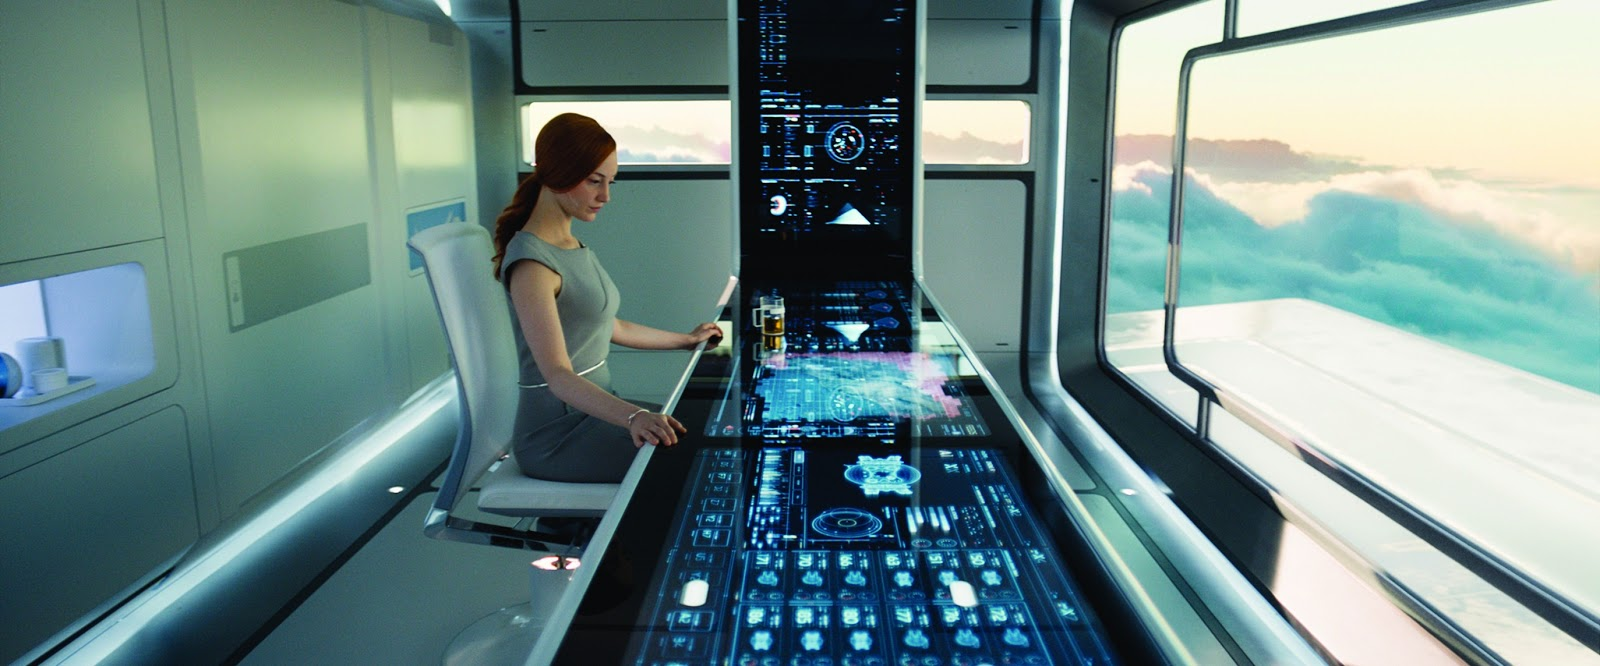 reel talk online: new images from the sci-fi film, oblivion